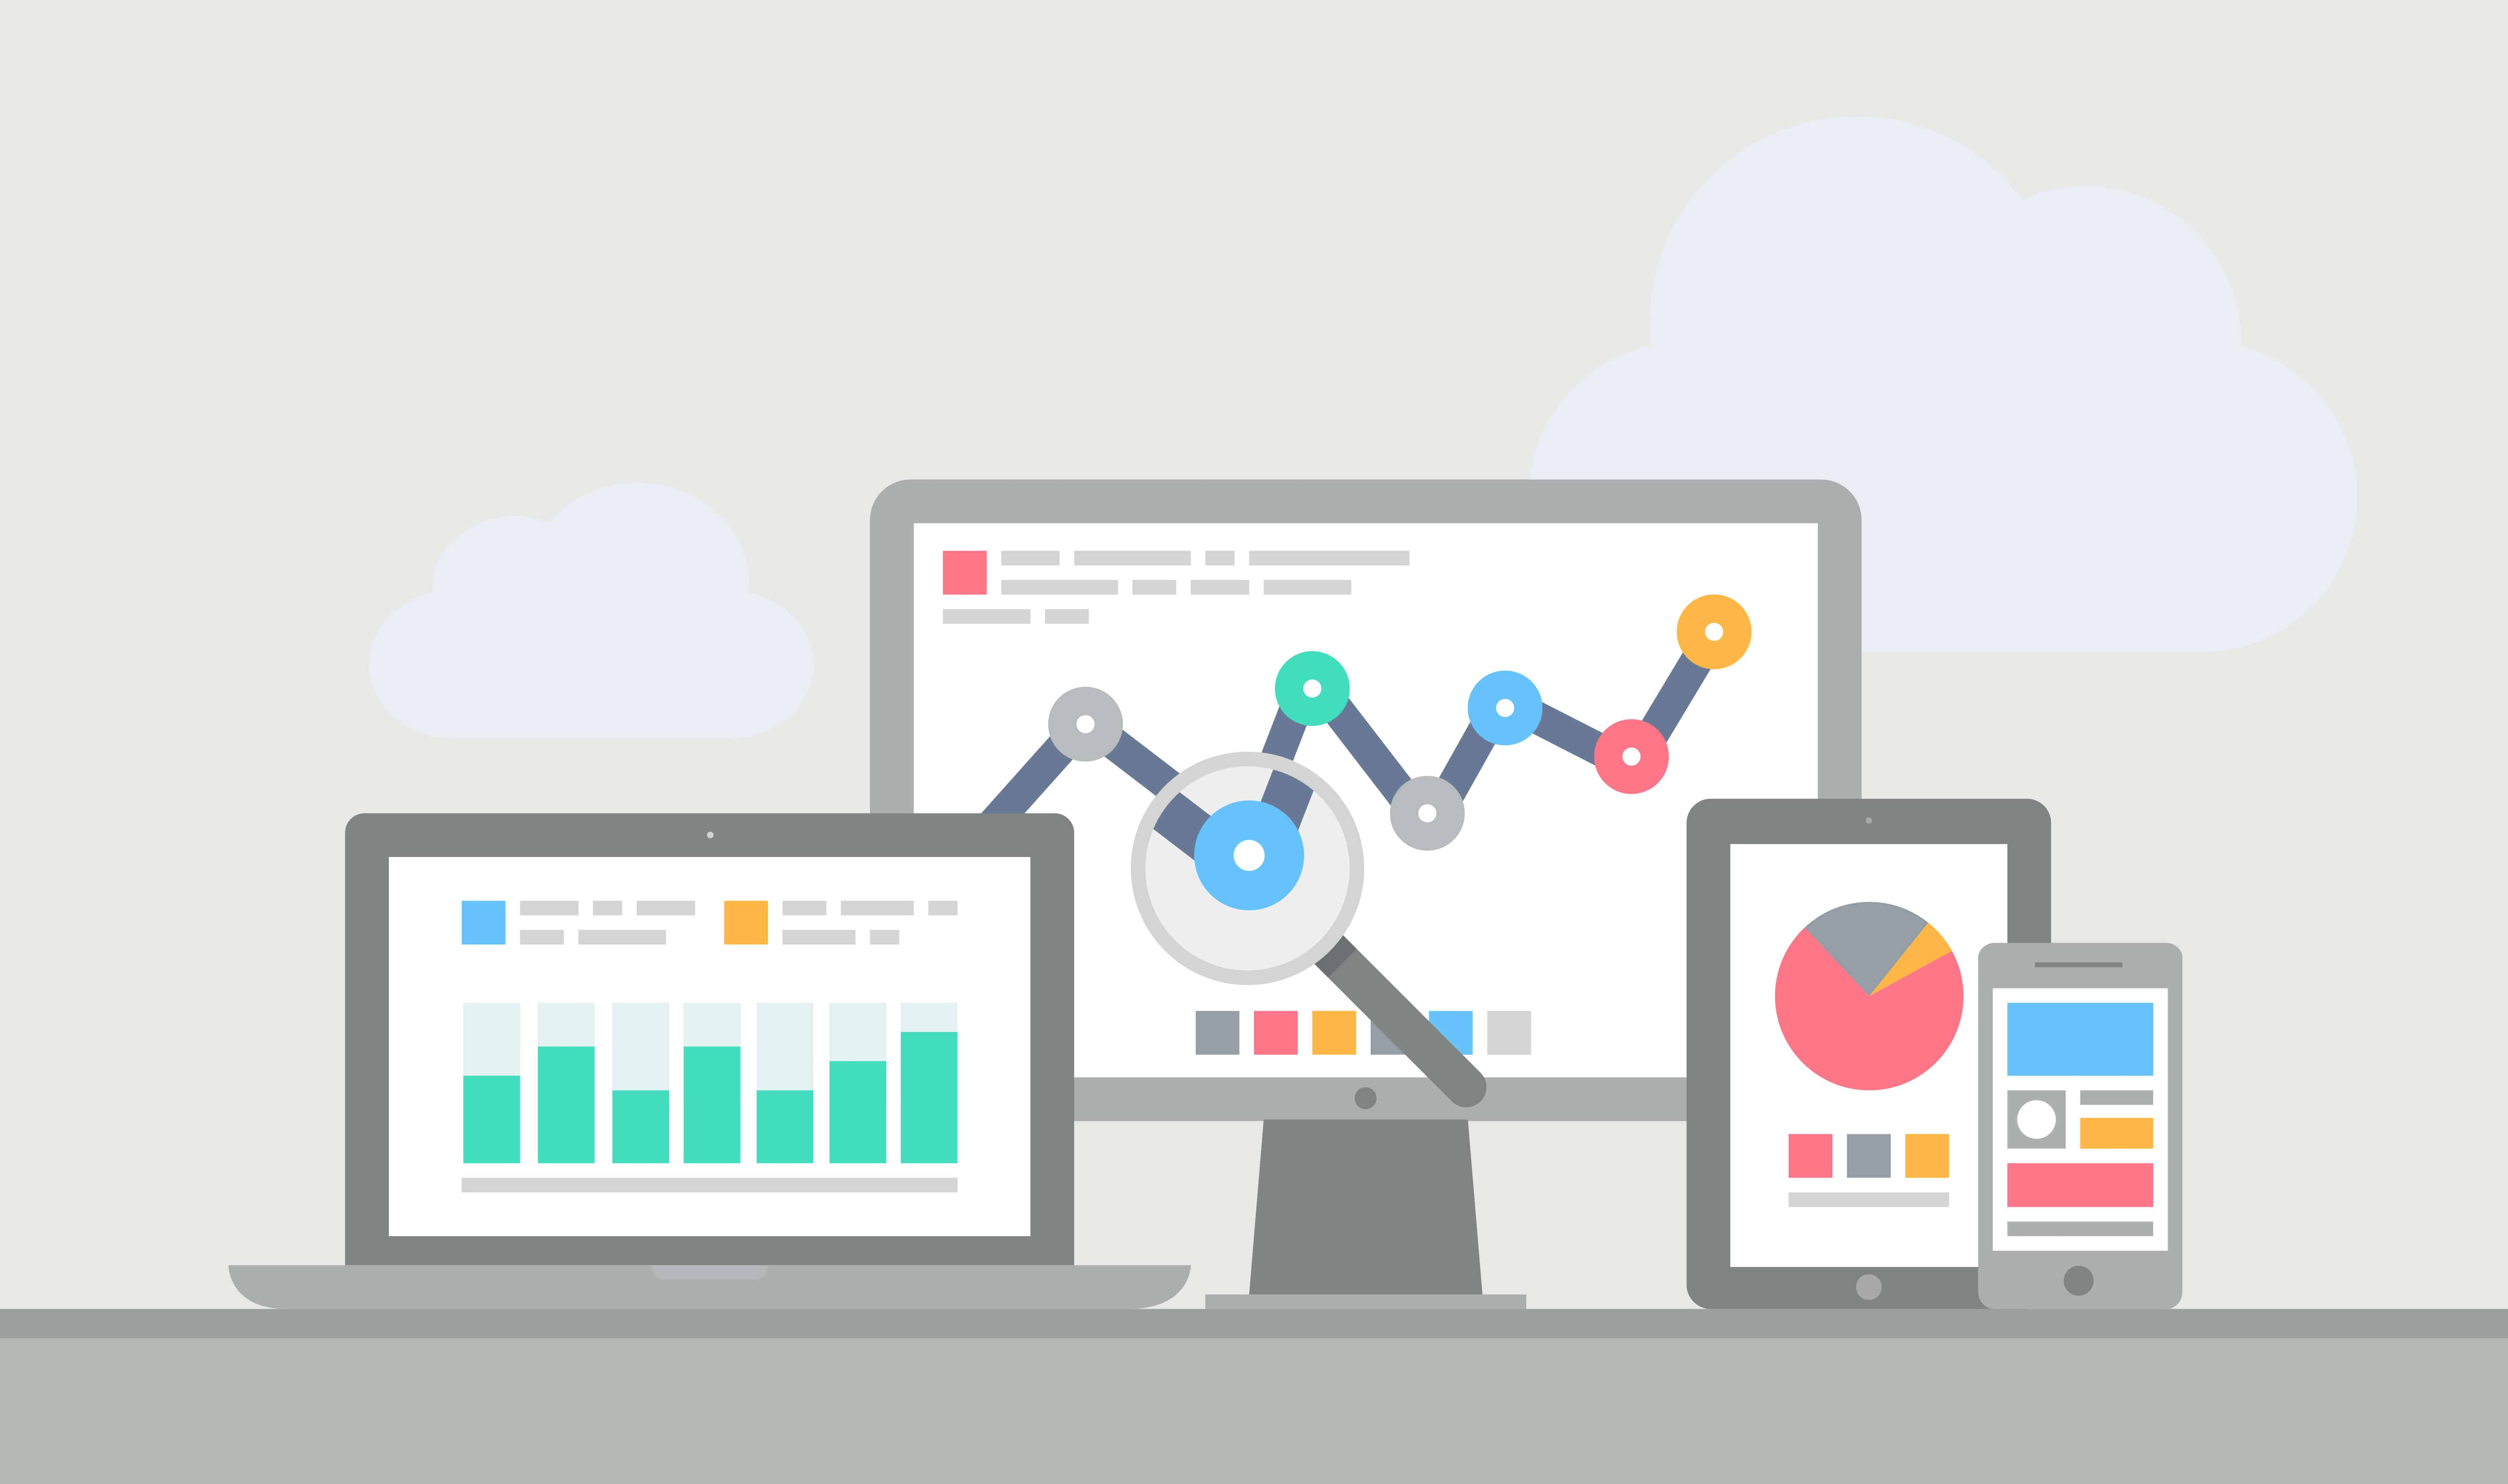 Flat design modern vector illustration concept of website analytics and computing data analysis using modern electronic and mobile devices. Isolated on grey background